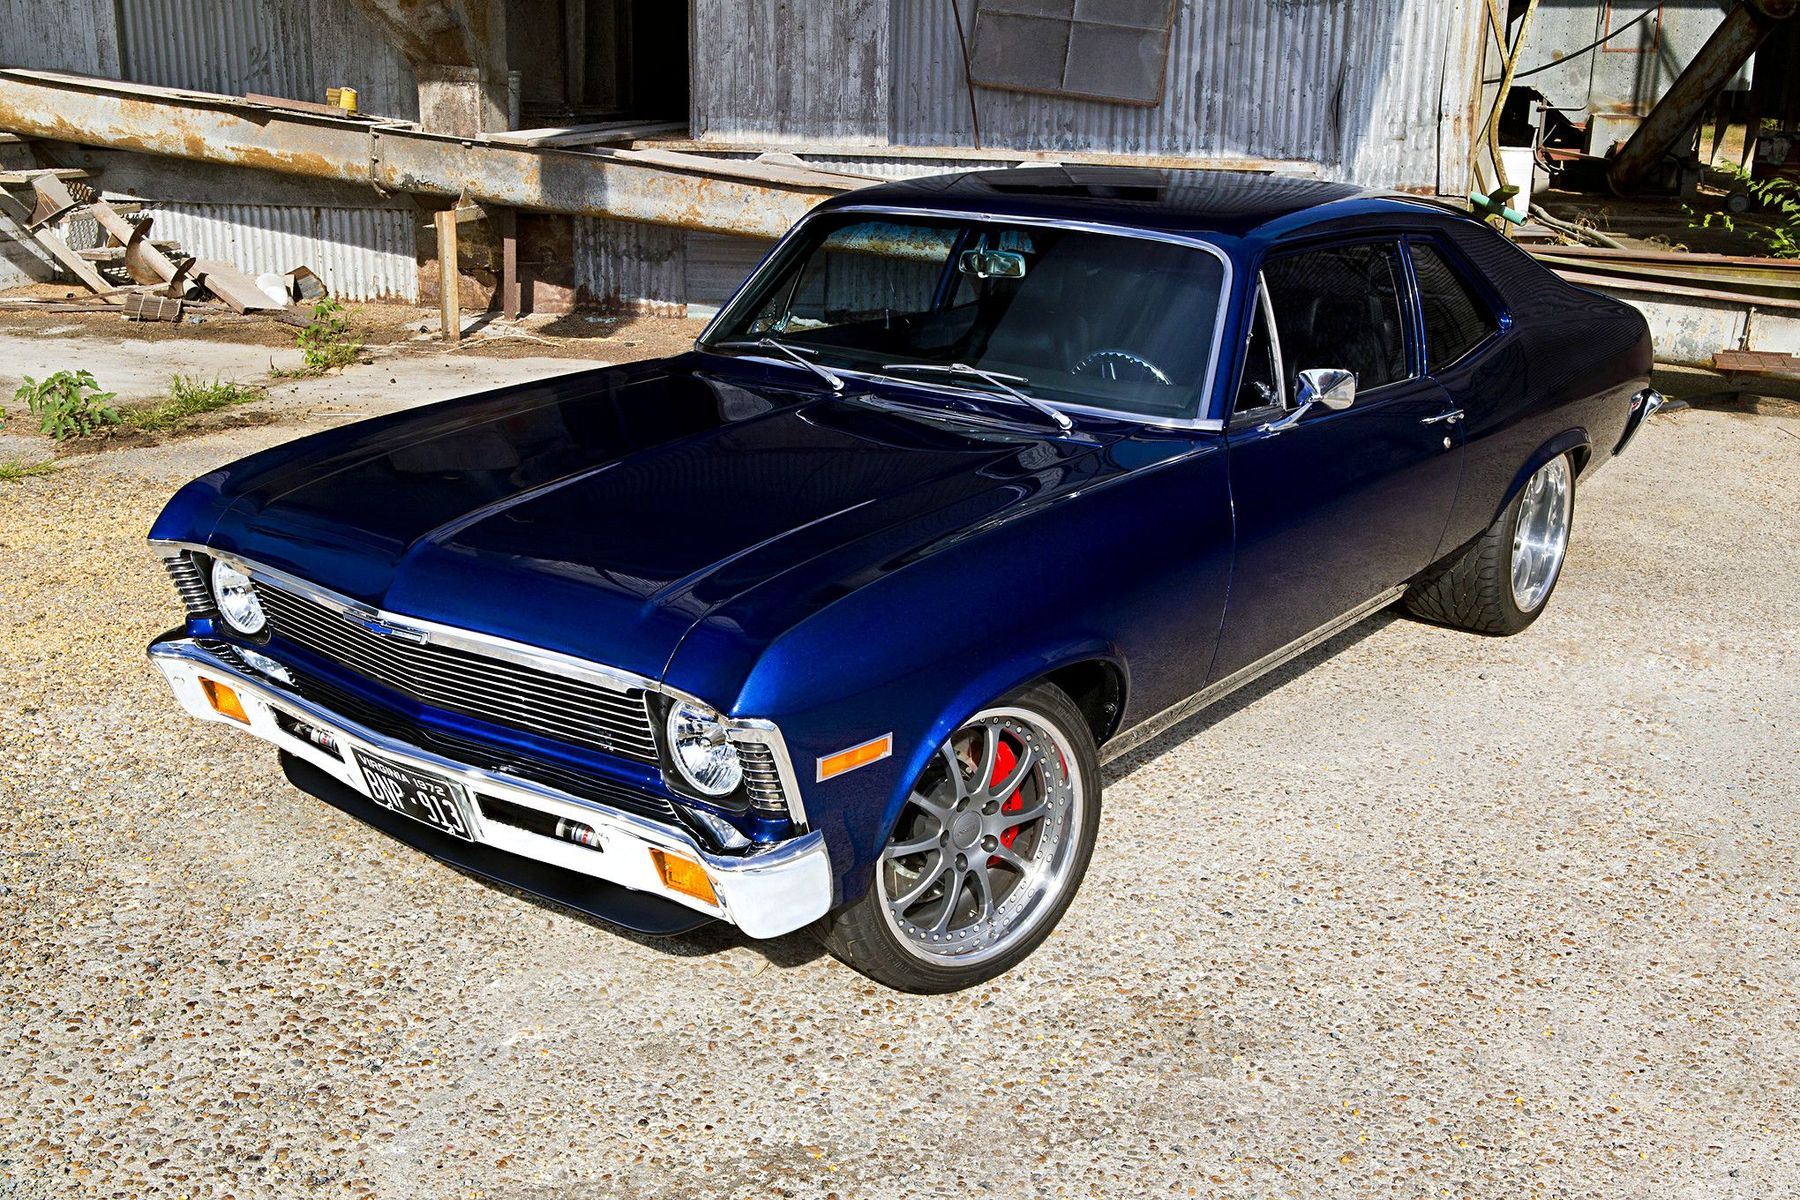 1972 Chevrolet Nova | Randy Clark's '72 Chevy Nova on Forgeline ZX3P Wheels